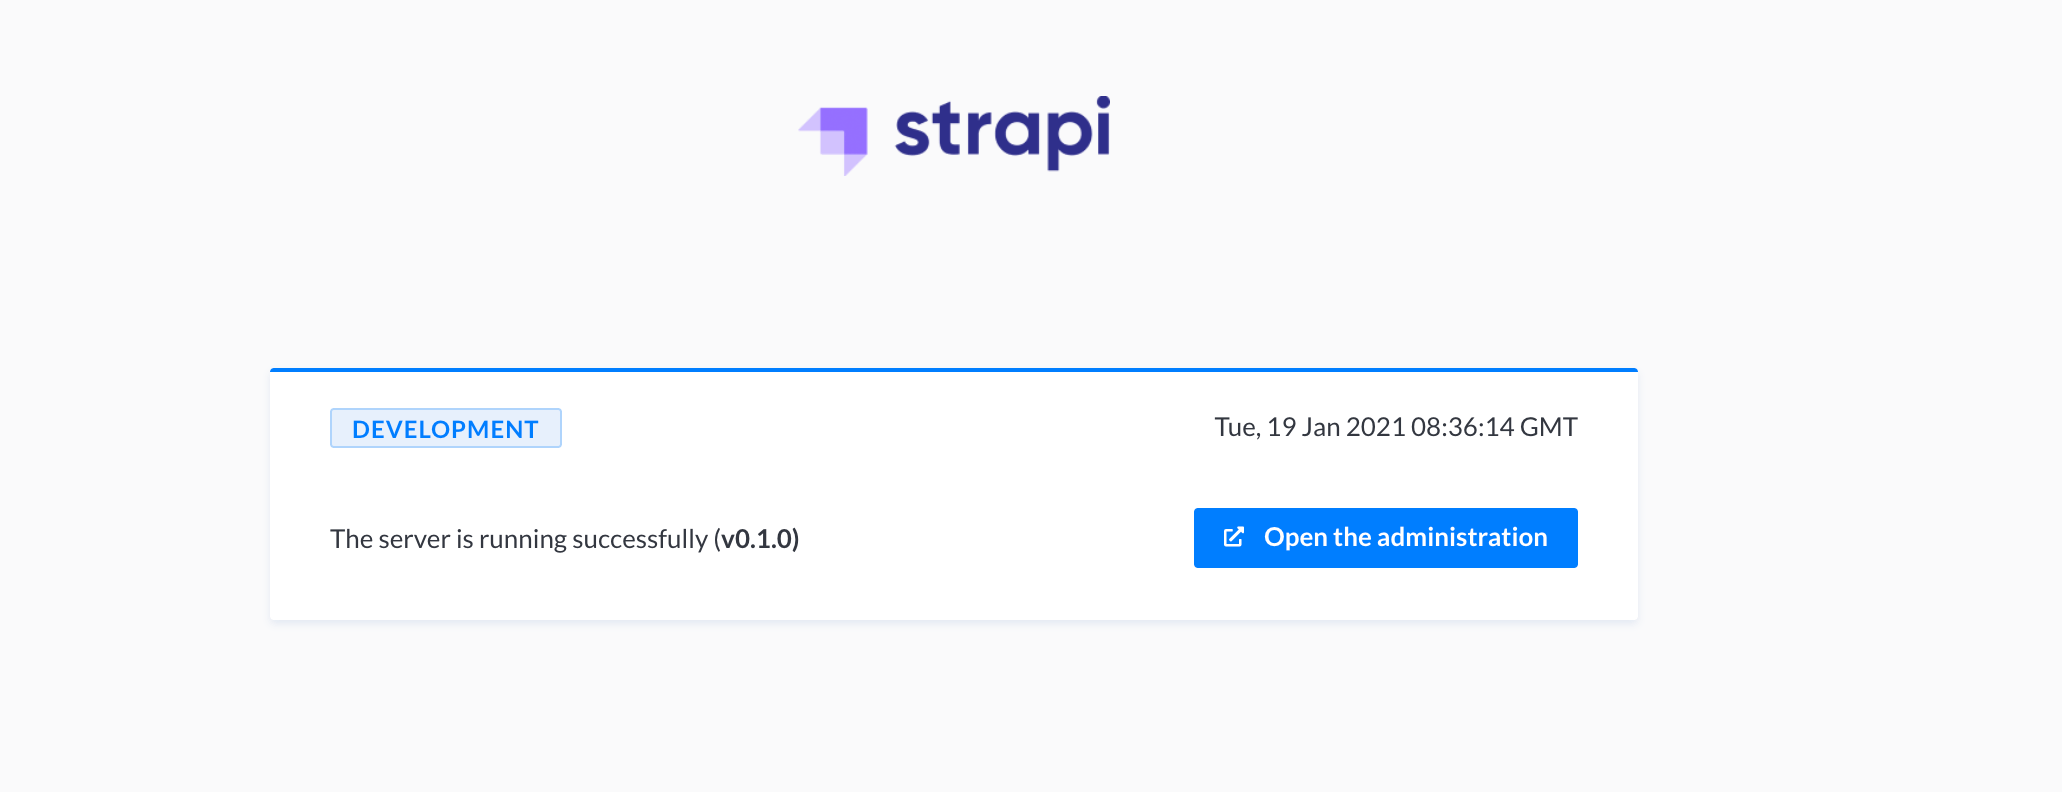 Strapi Server Deployed Successfully